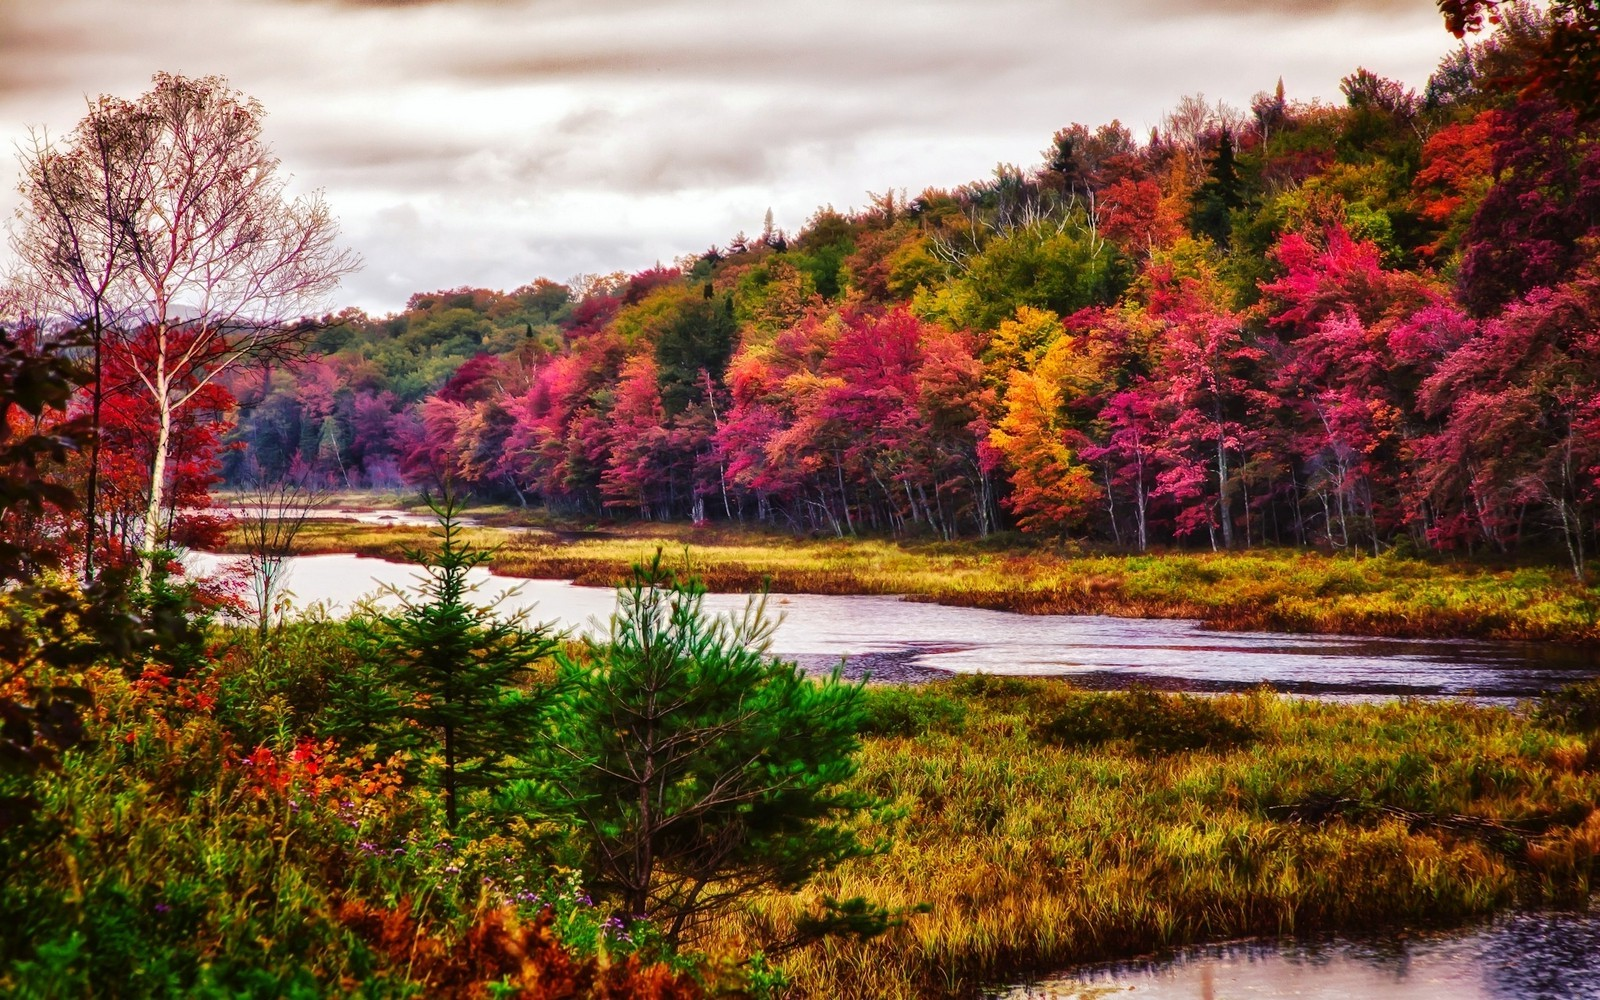 nature Landscape Trees River Fall Forest Colorful 1600x1000